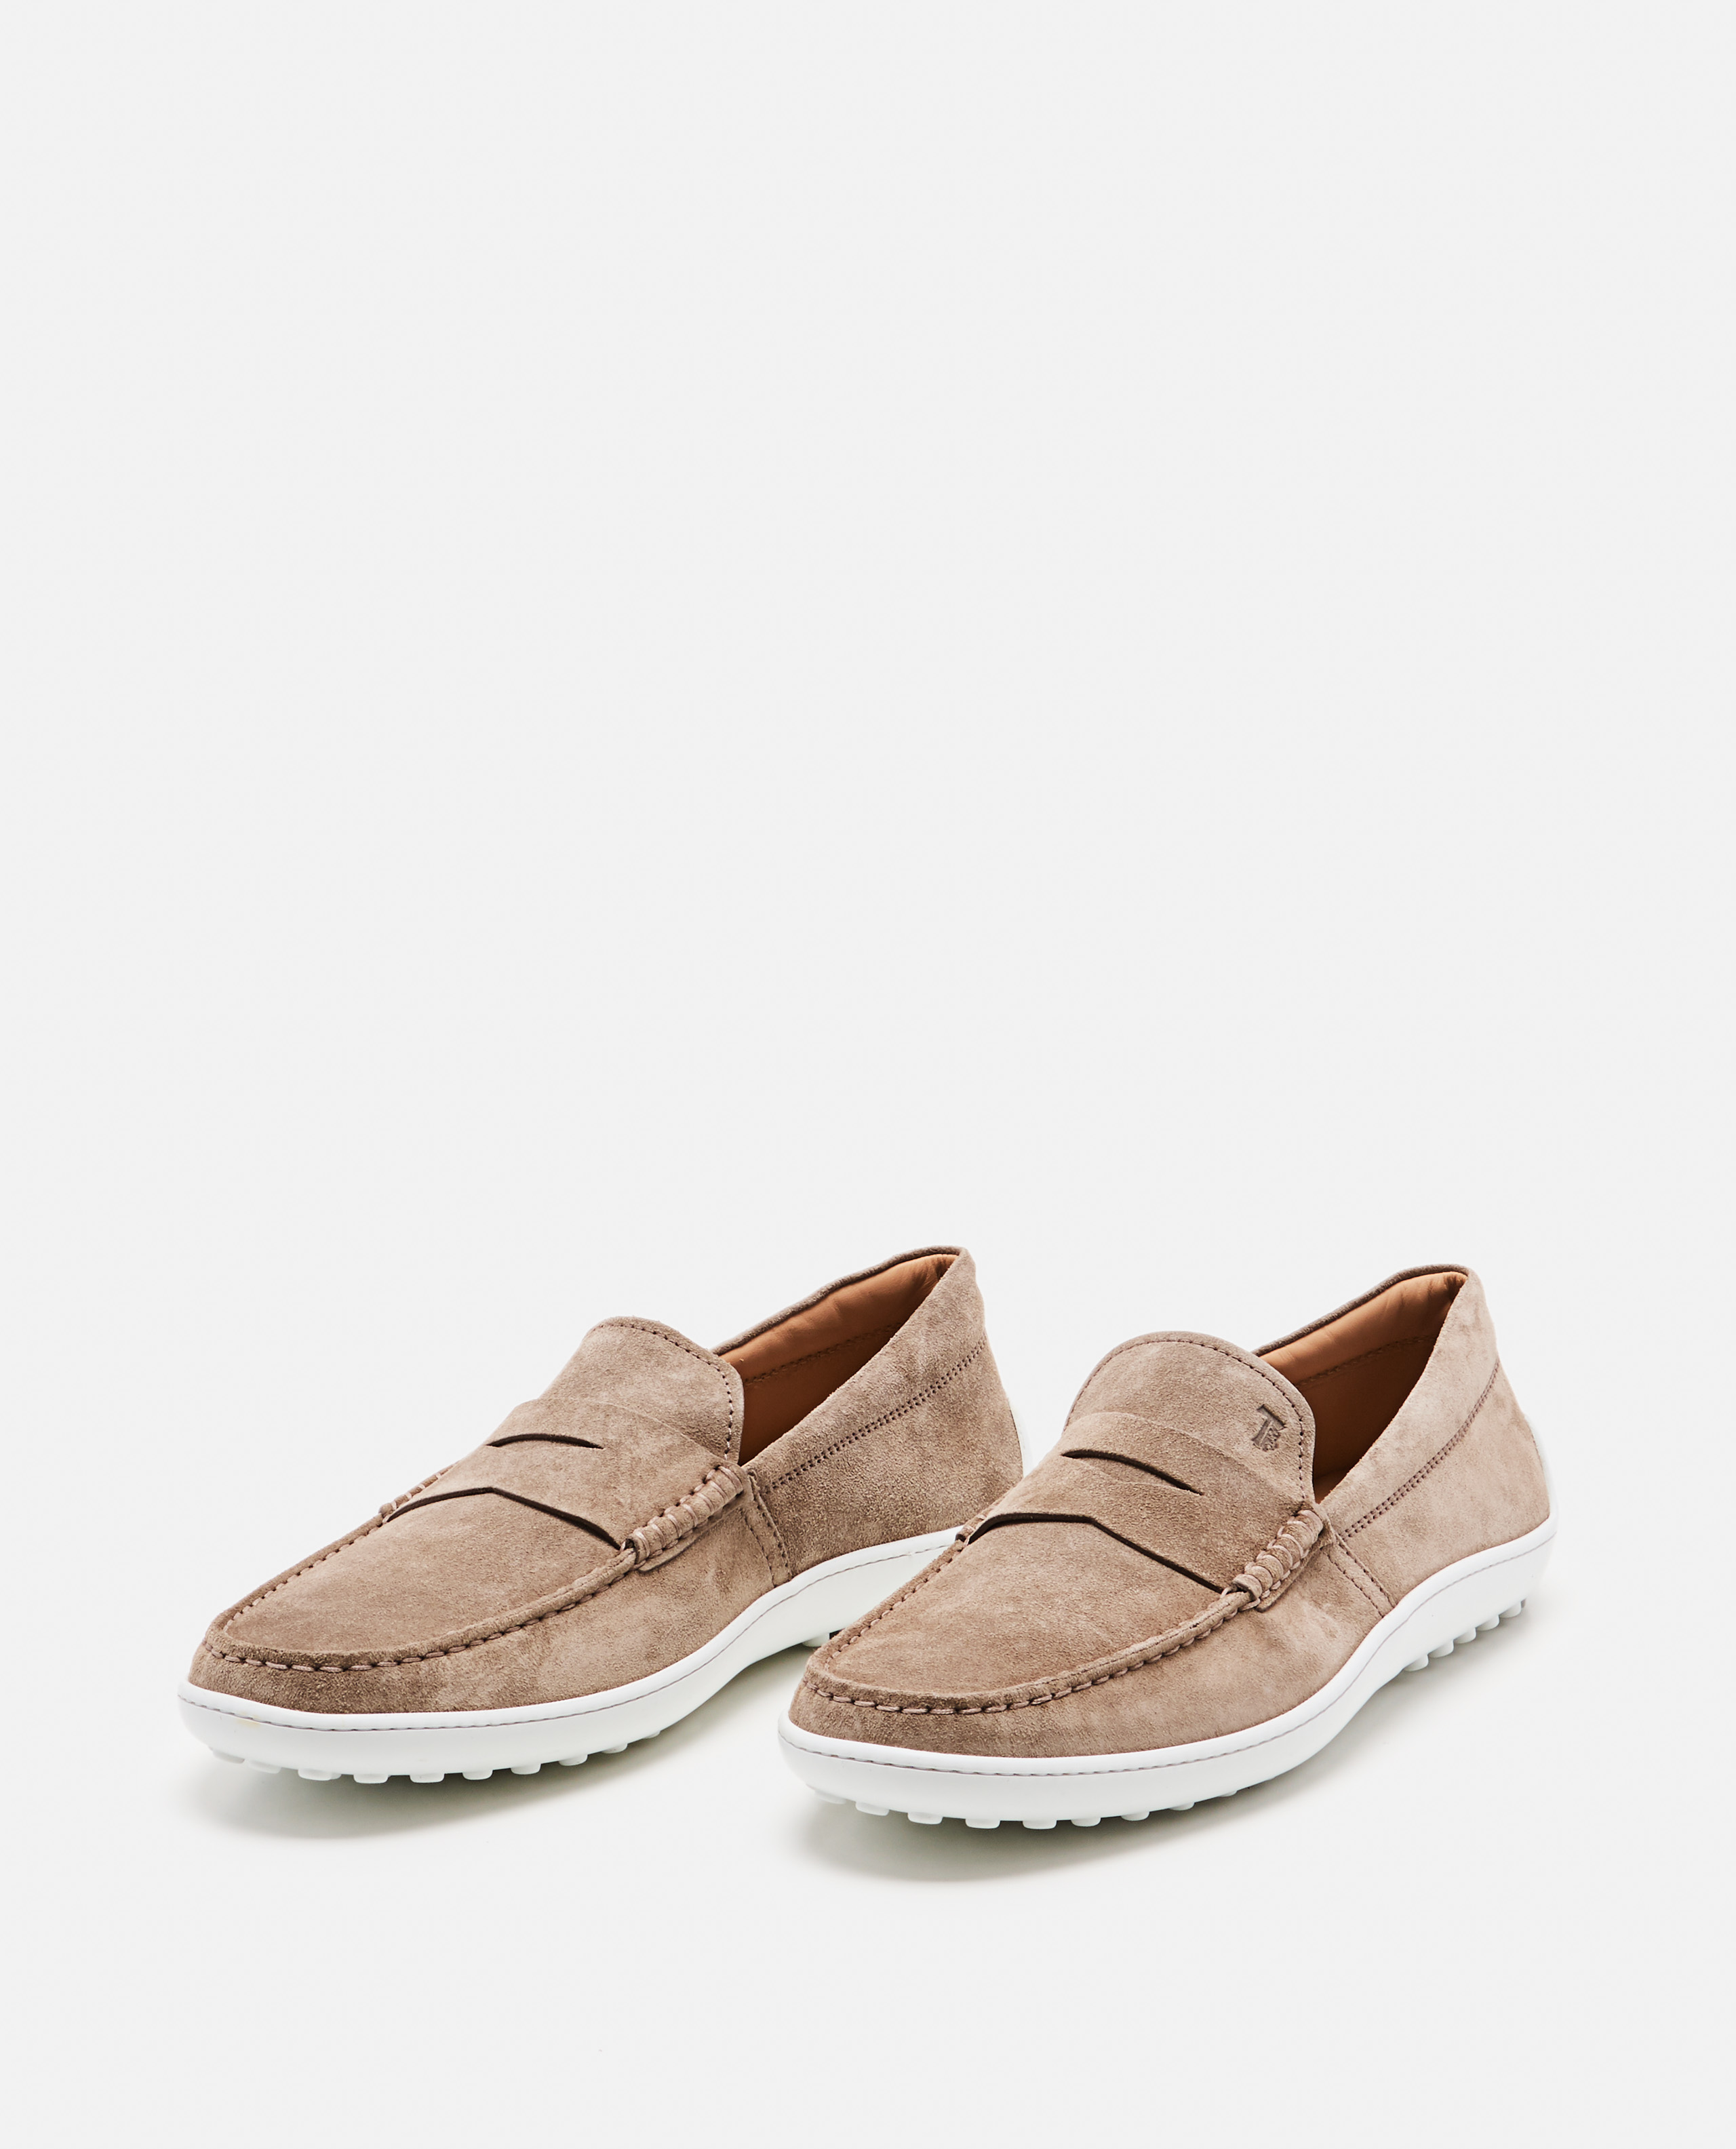 Loafers with contrasting sole